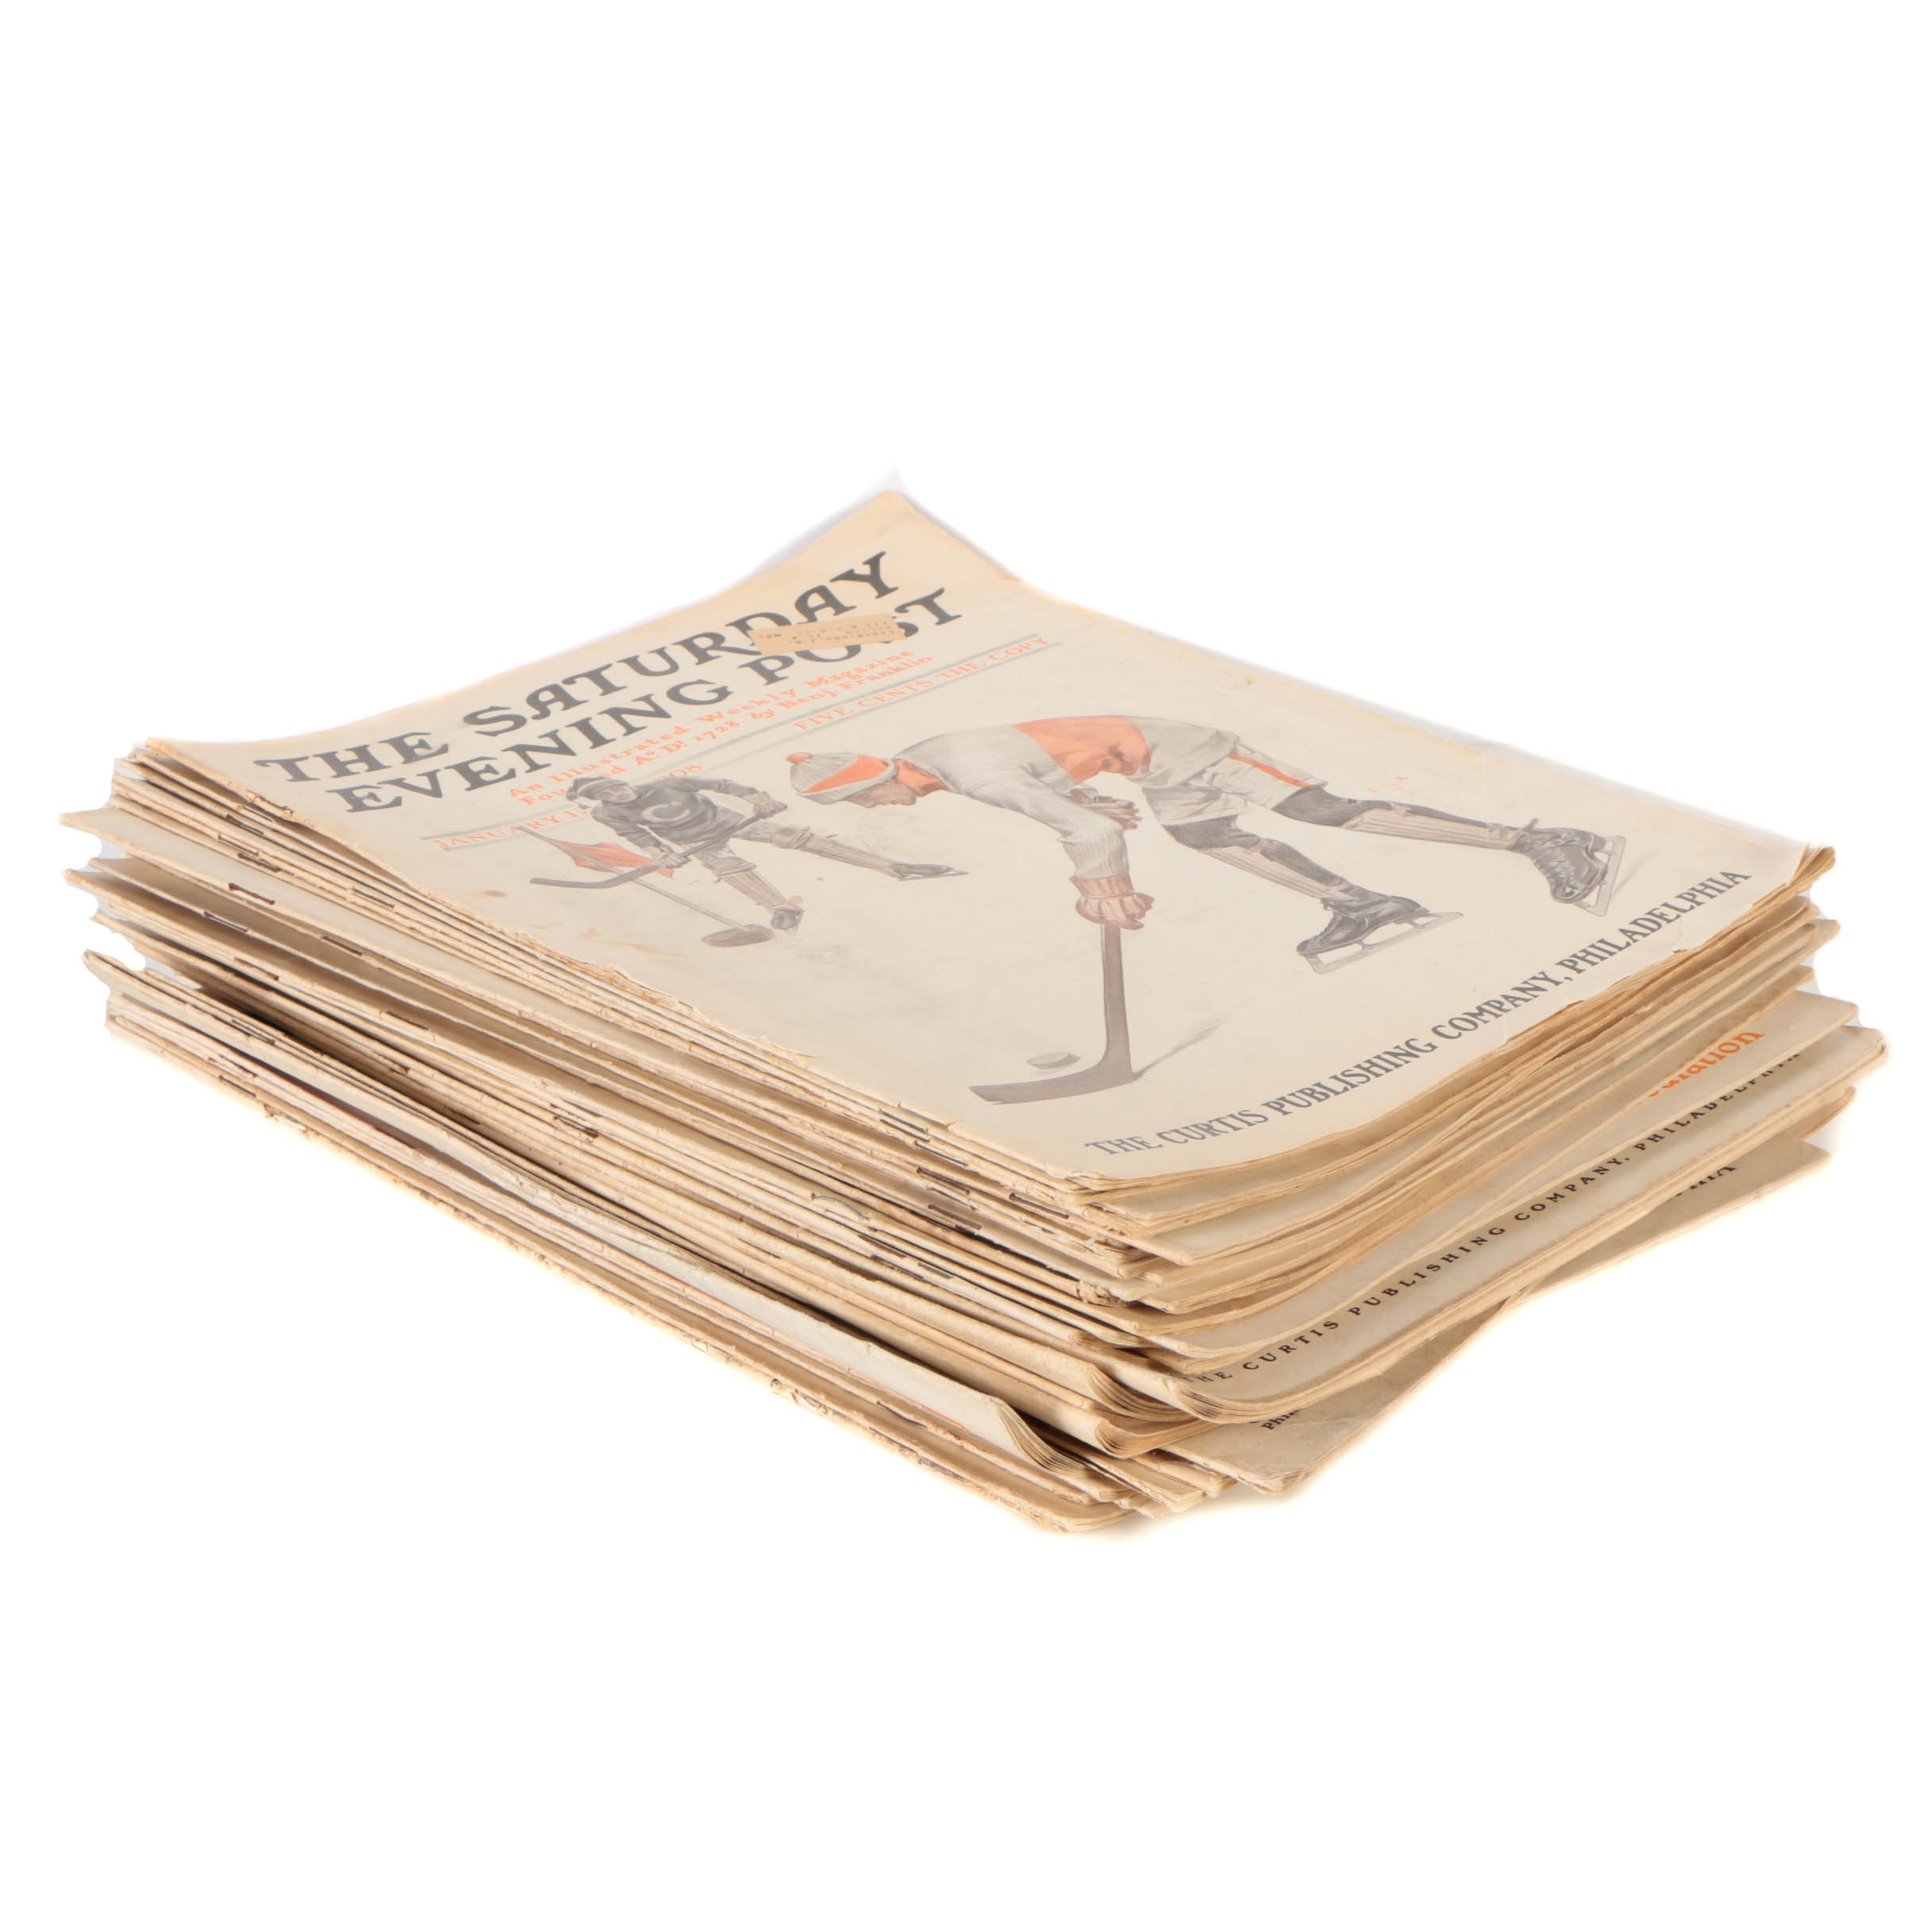 Collection of _The Saturday Evening Post_ from 1908